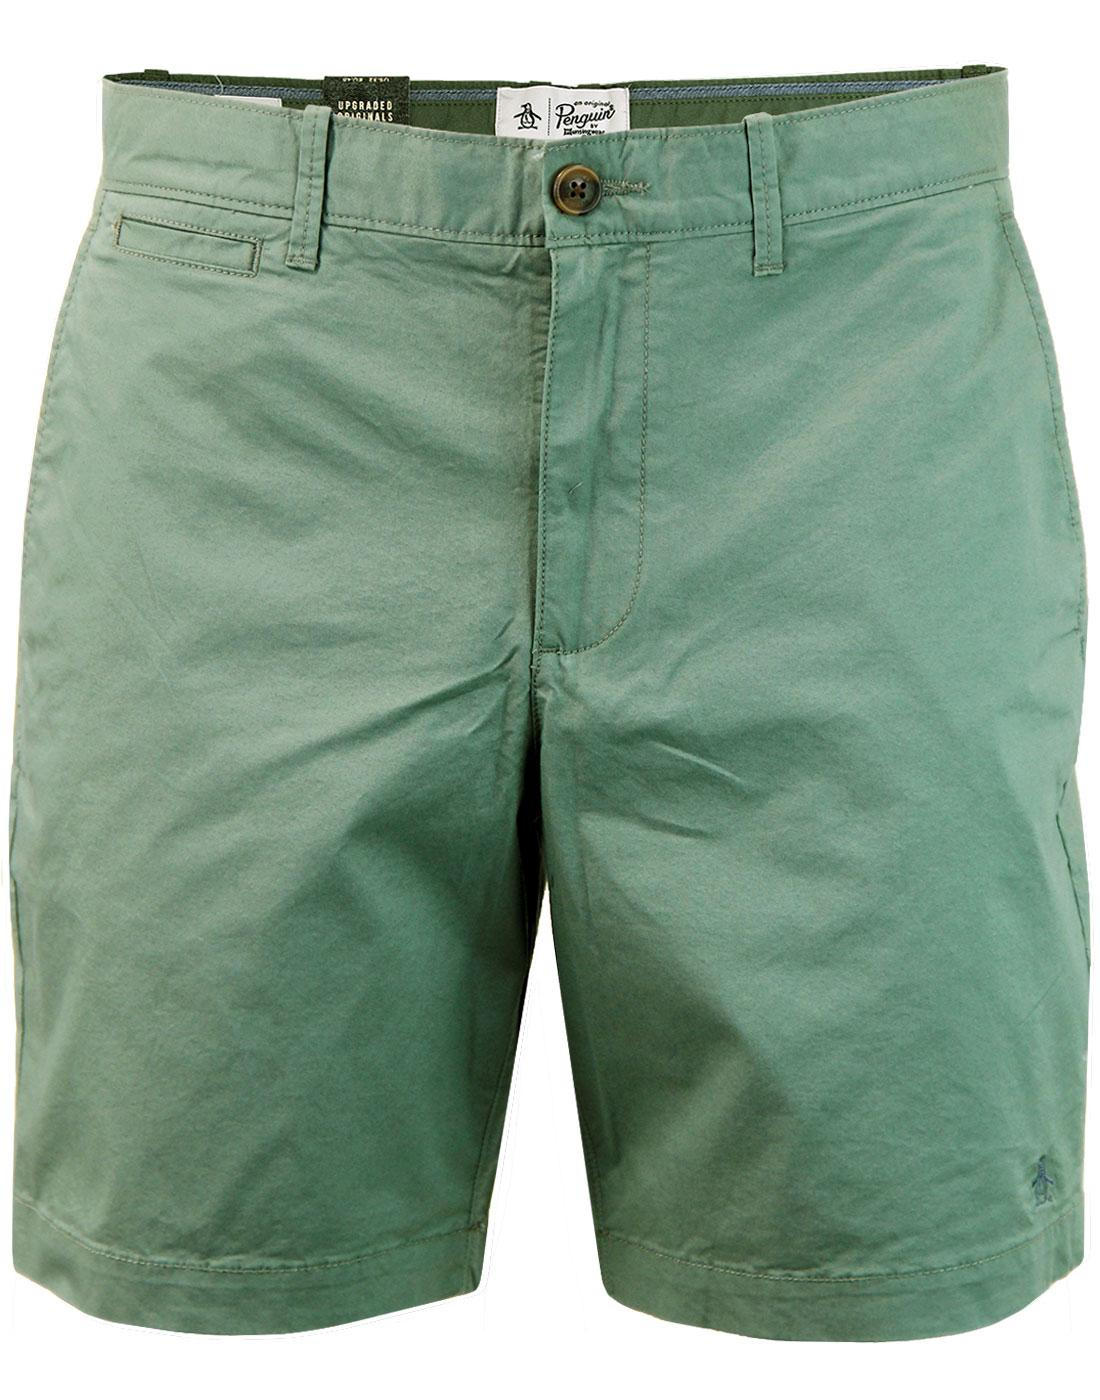 ORIGINAL PENGUIN P55 Retro Slim Chino Shorts DE